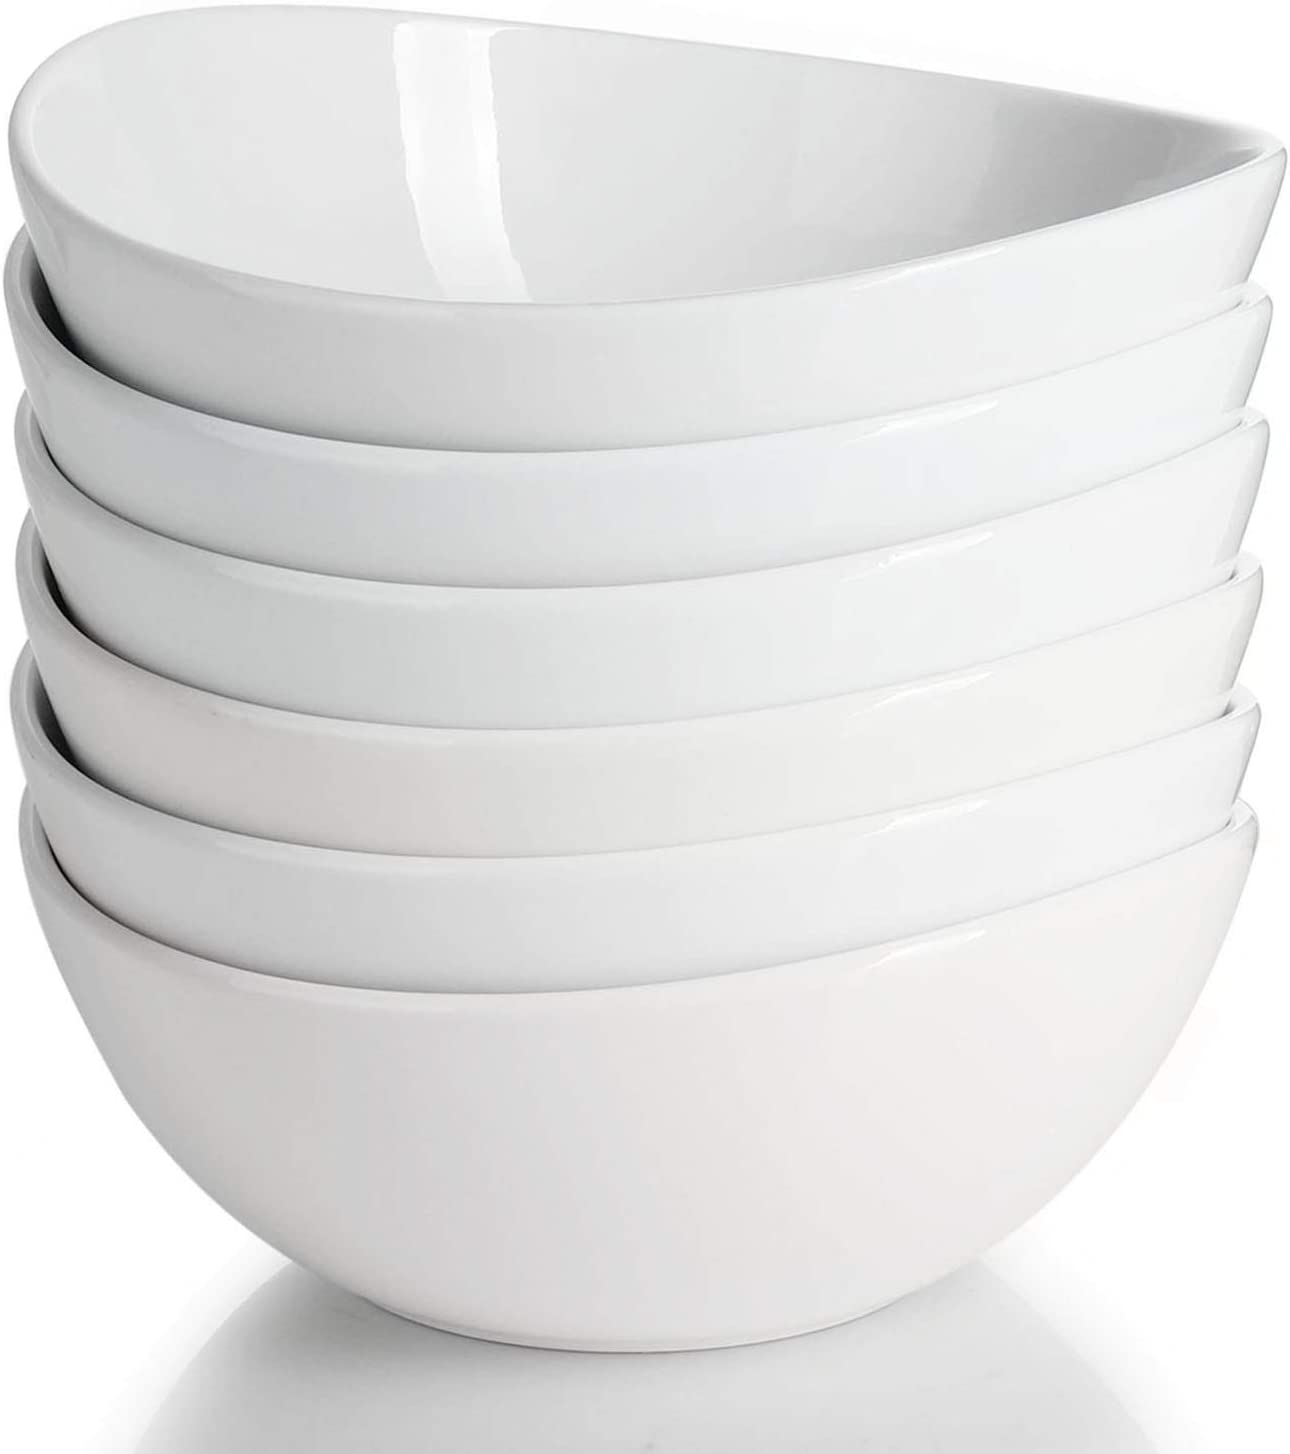 Sweese 103.001 Porcelain Bowls - 28 Ounce for Cereal, Salad and Desserts - Set of 6, White